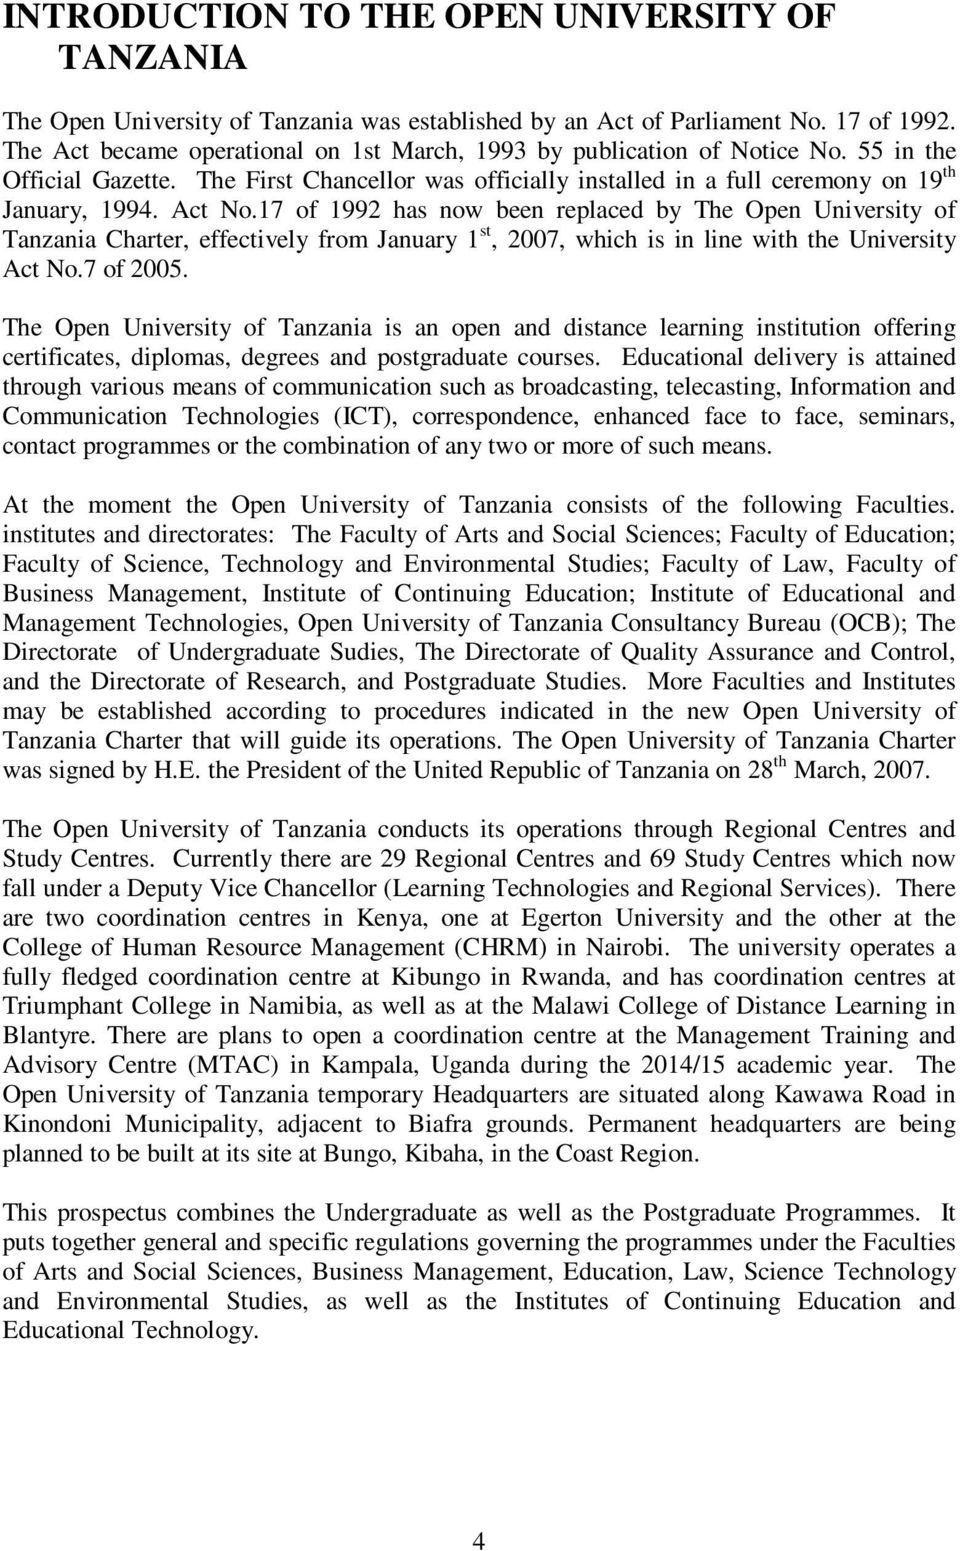 17 of 1992 has now been replaced by The Open University of Tanzania Charter, effectively from January 1 st, 2007, which is in line with the University Act No.7 of 2005.